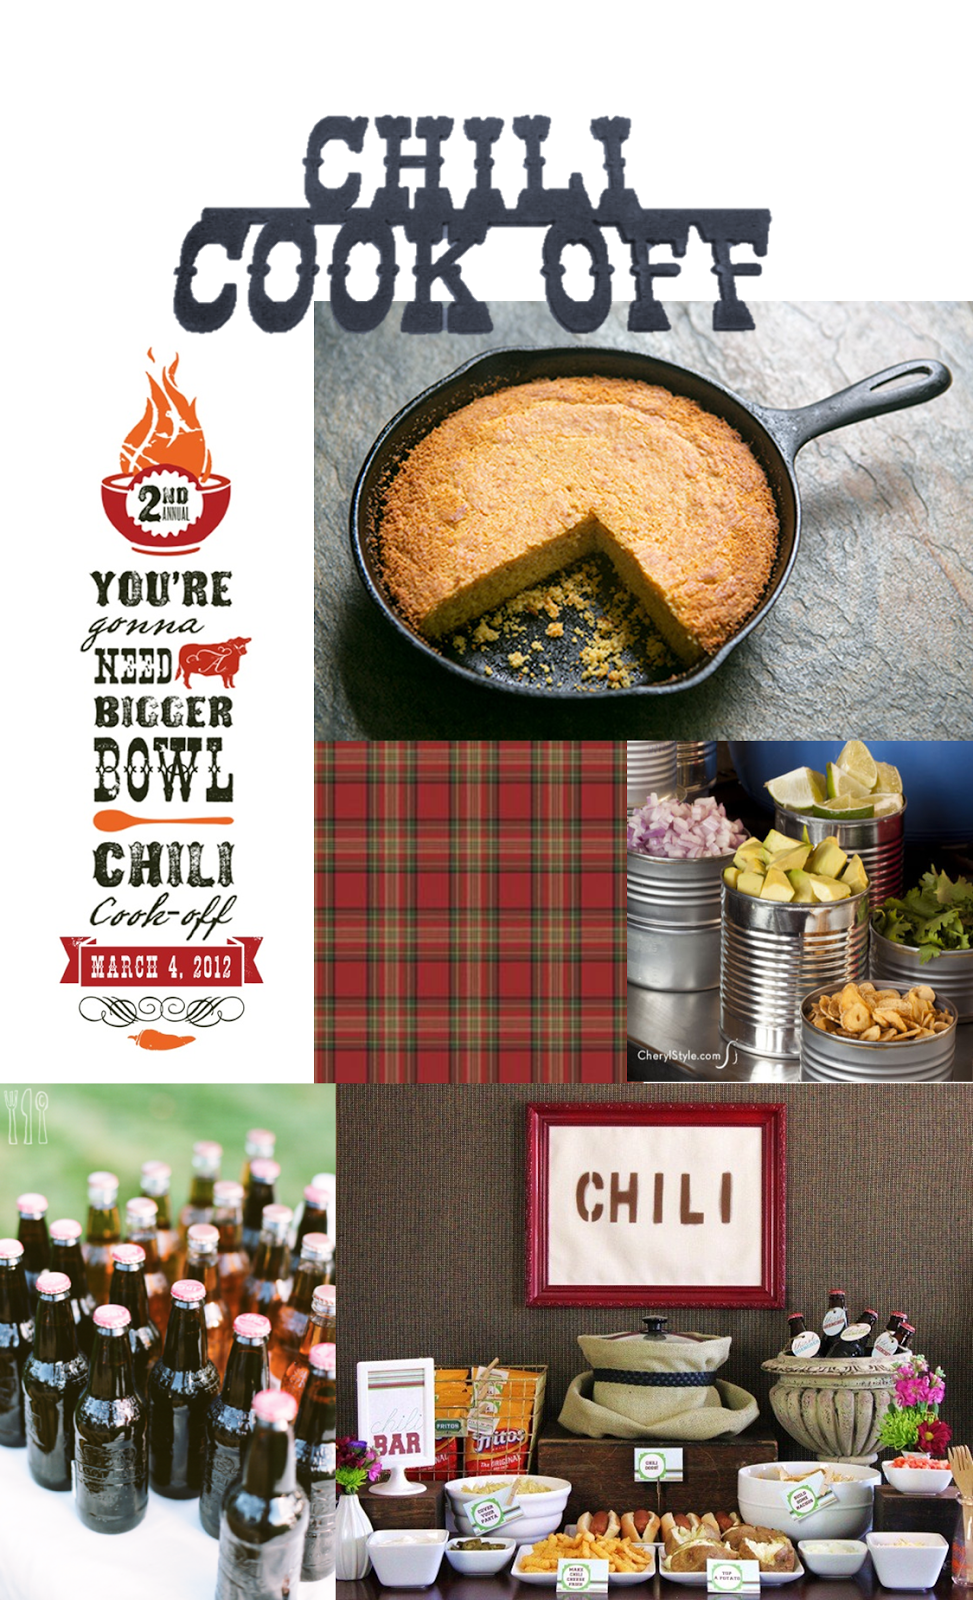 chili cook off, chili cook off party, chili cookoff, fall party ideas, chili cook off party ideas